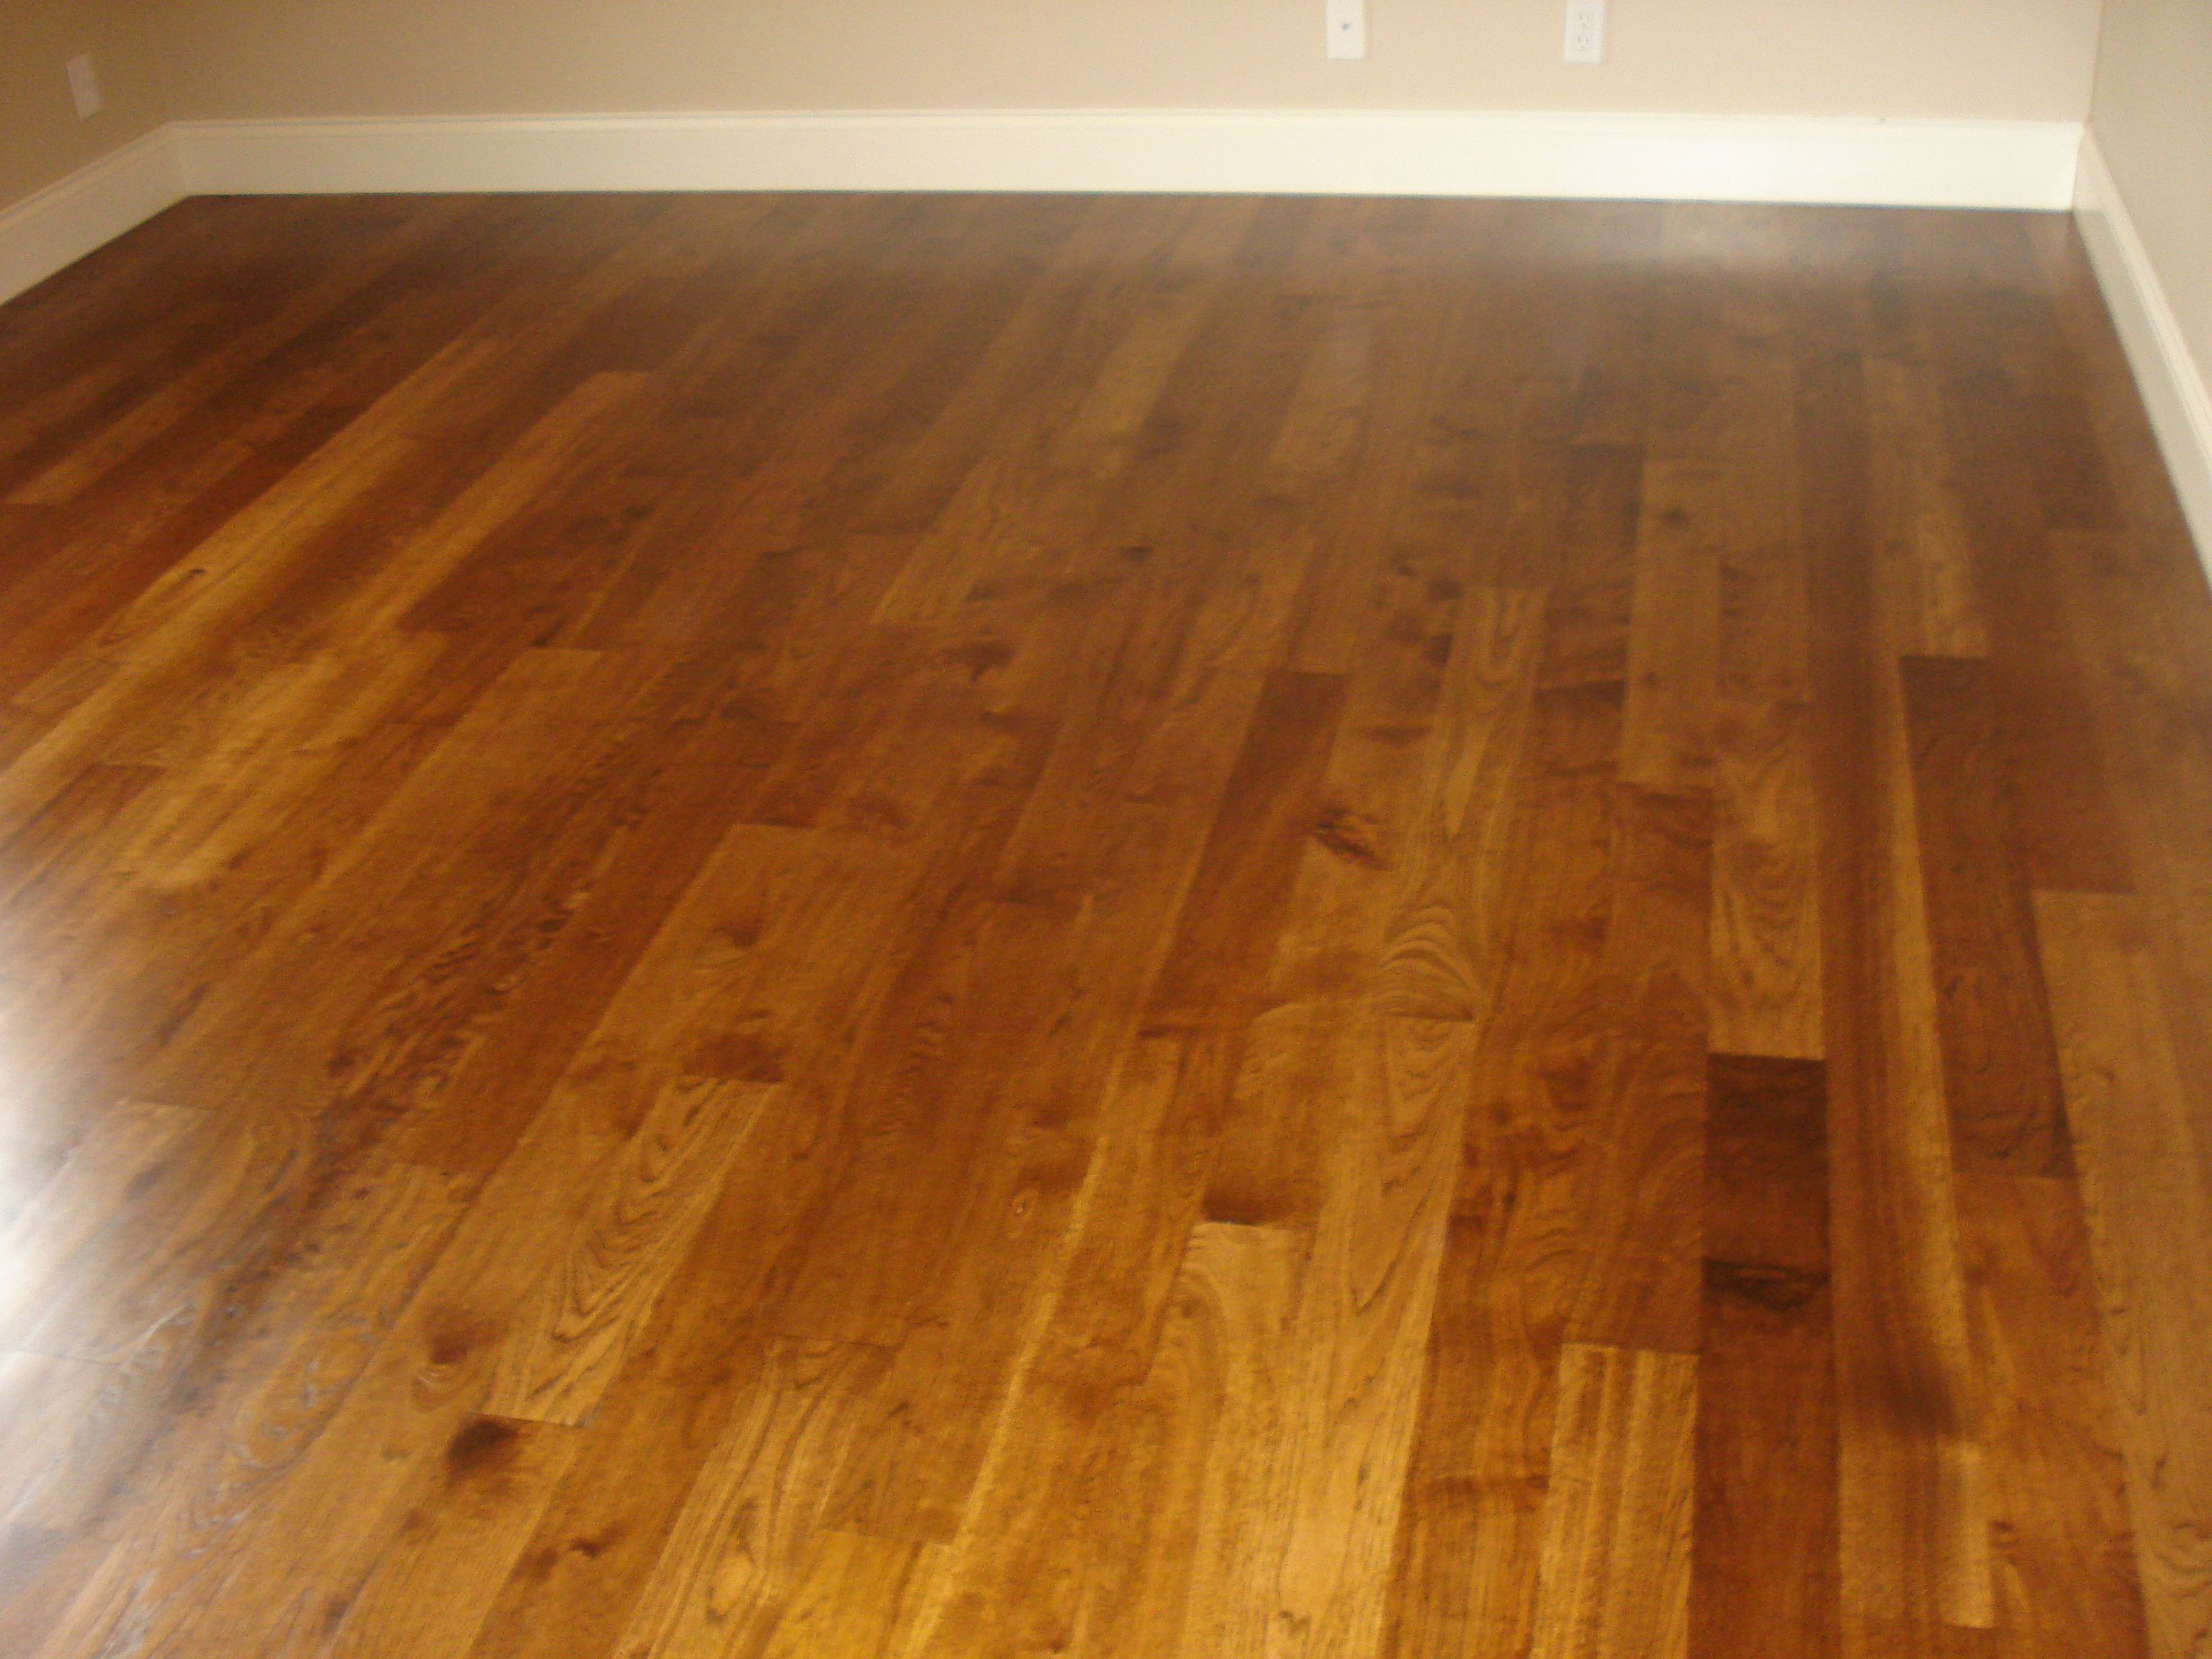 Hardwood Floors And Decor Miaowanco - Hardwood floor images